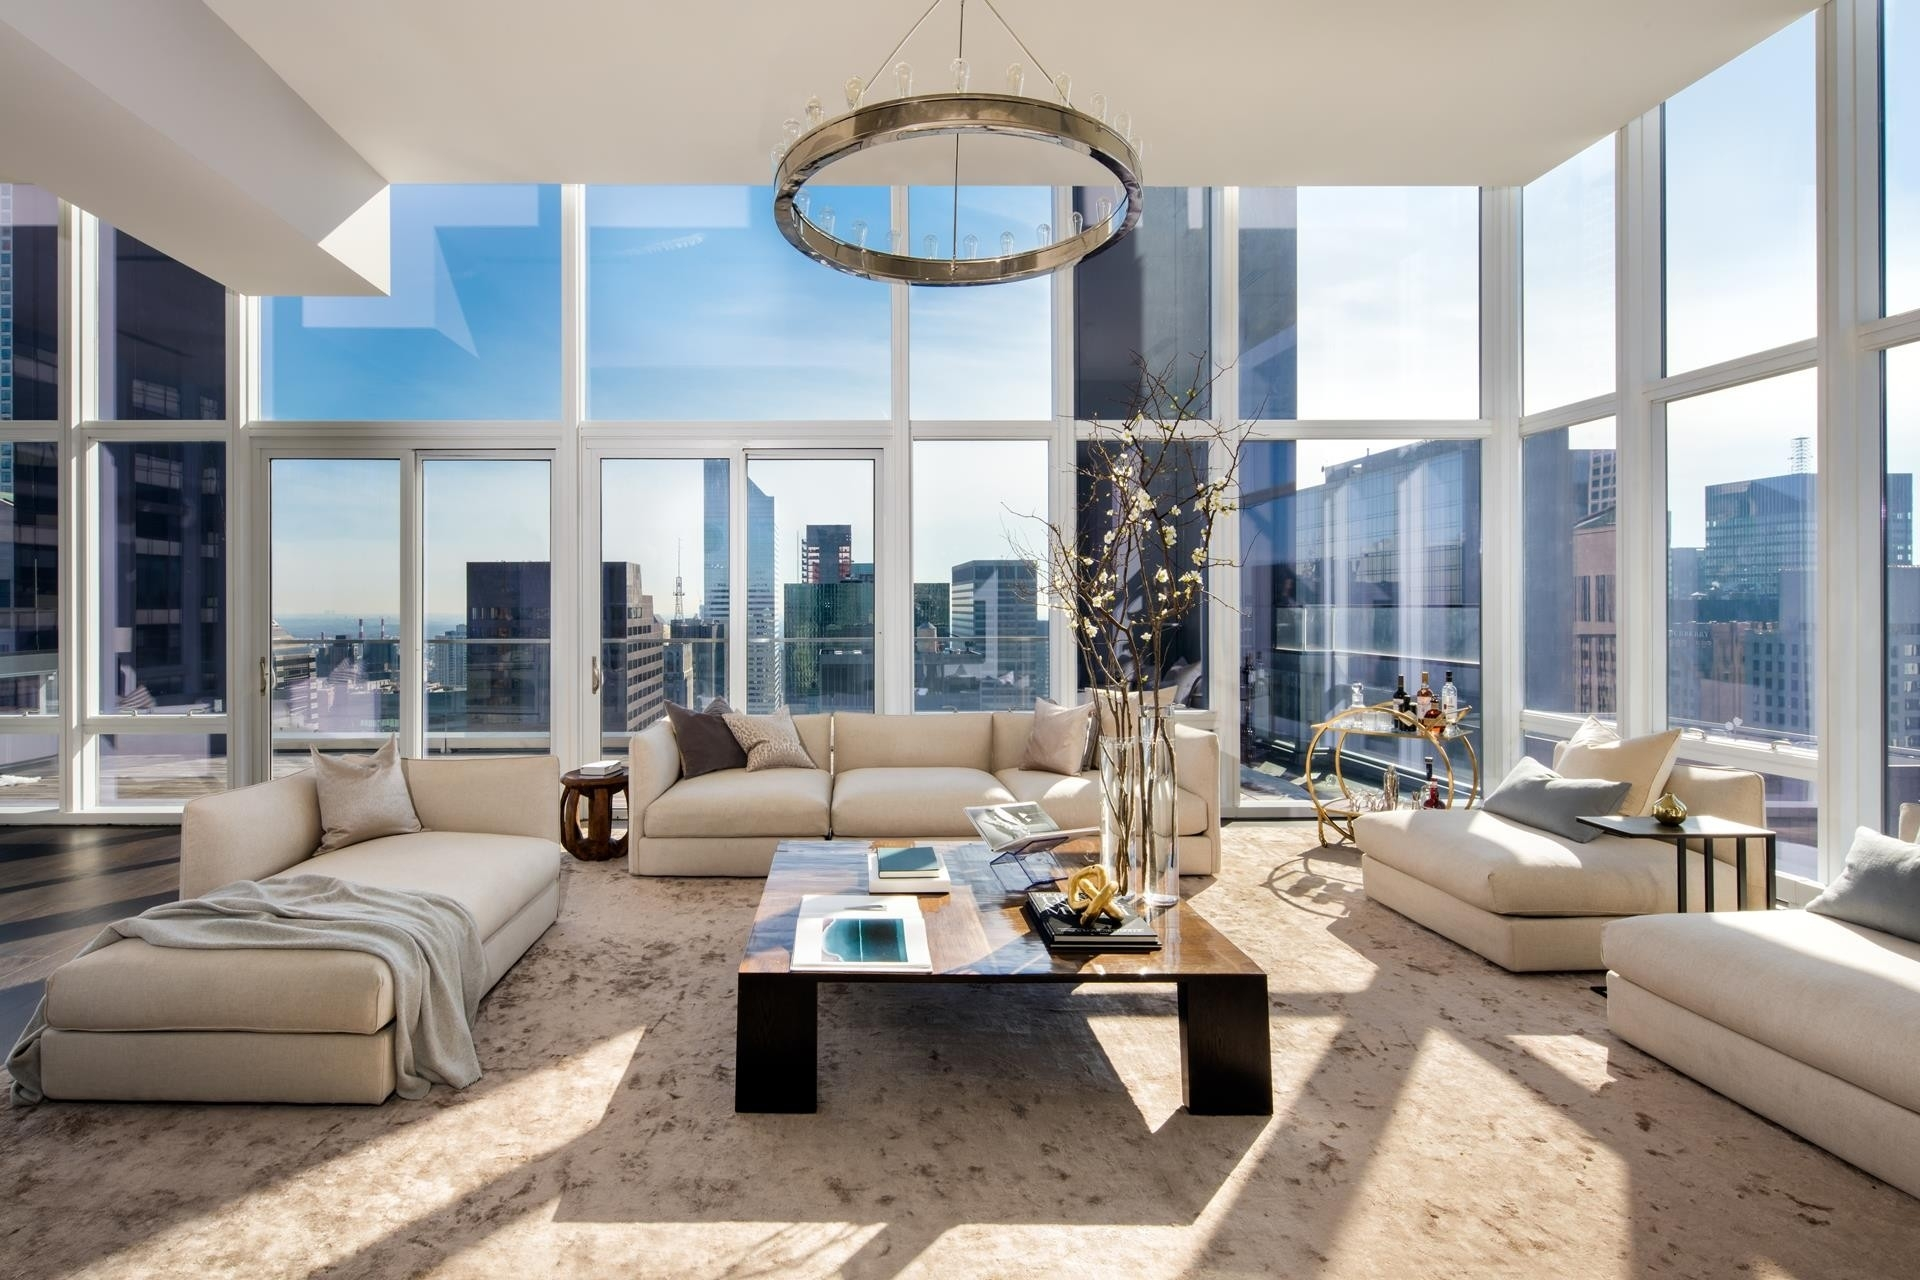 Condominium for Sale at Baccarat Hotel And Residences, 20 W 53RD ST , PH48/49 Midtown West, New York, NY 10103